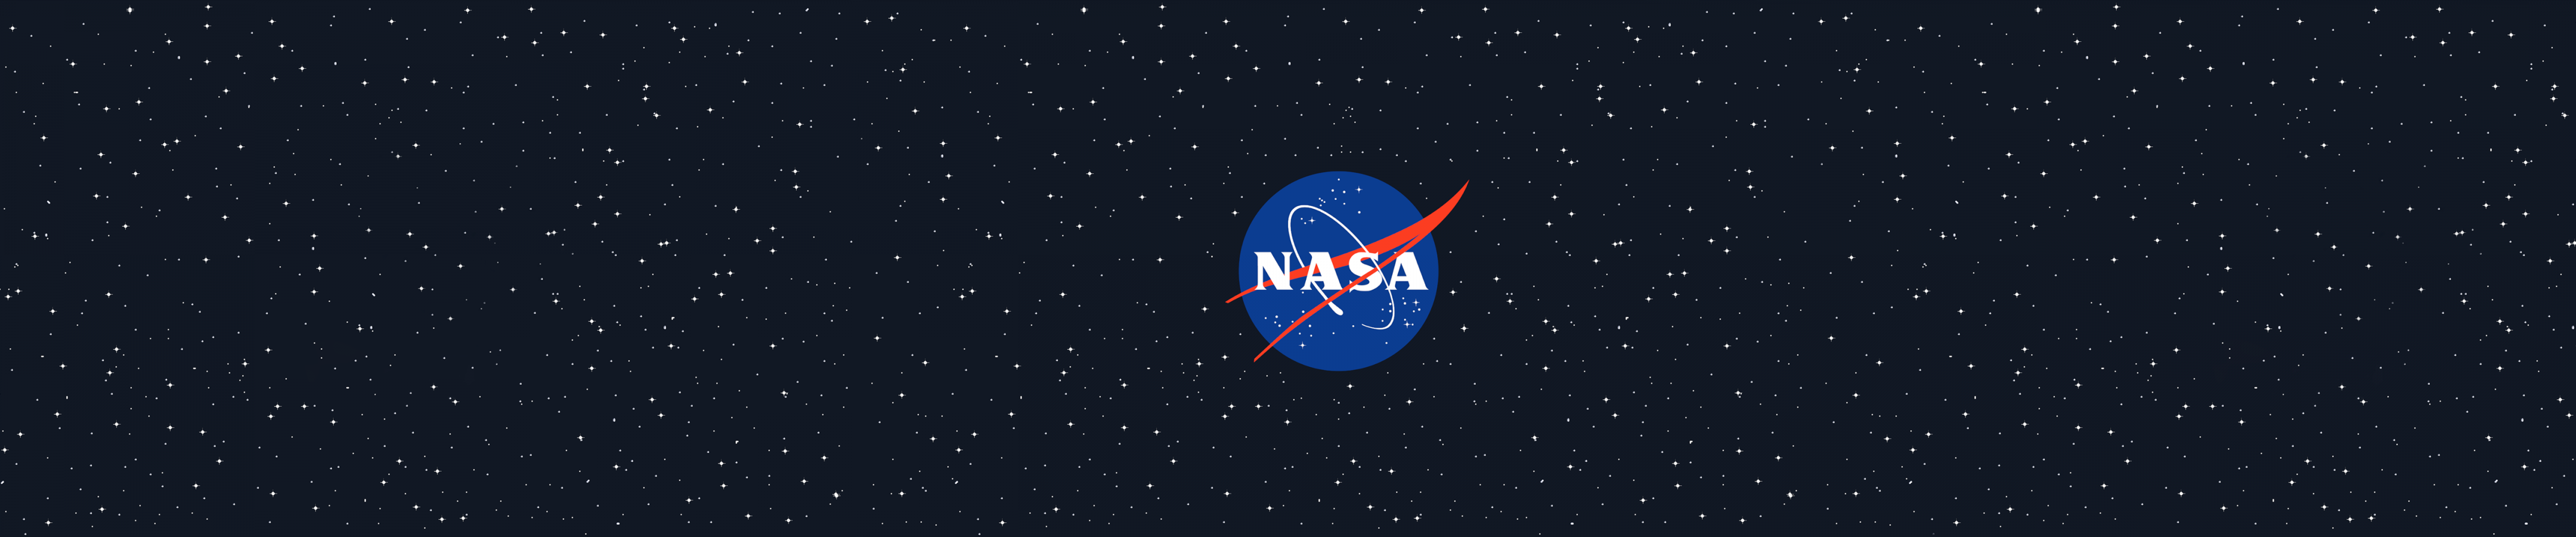 Nasa - Triple Monitor Background